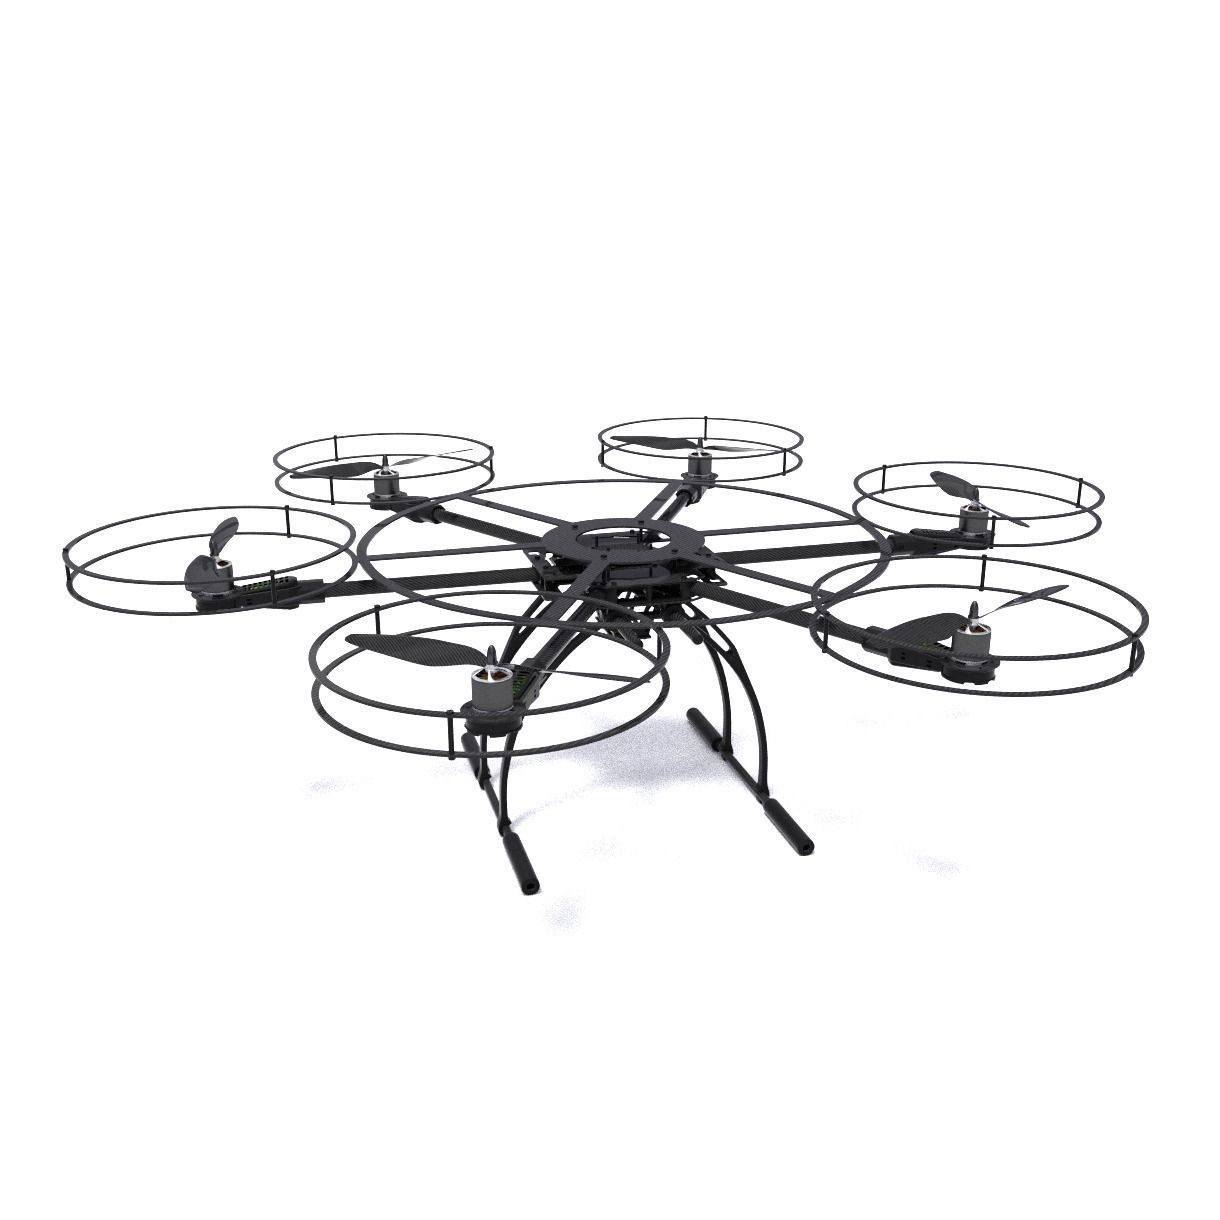 Hexacopter Drone 3d Model Obj Fbx Dxf Stl Blend